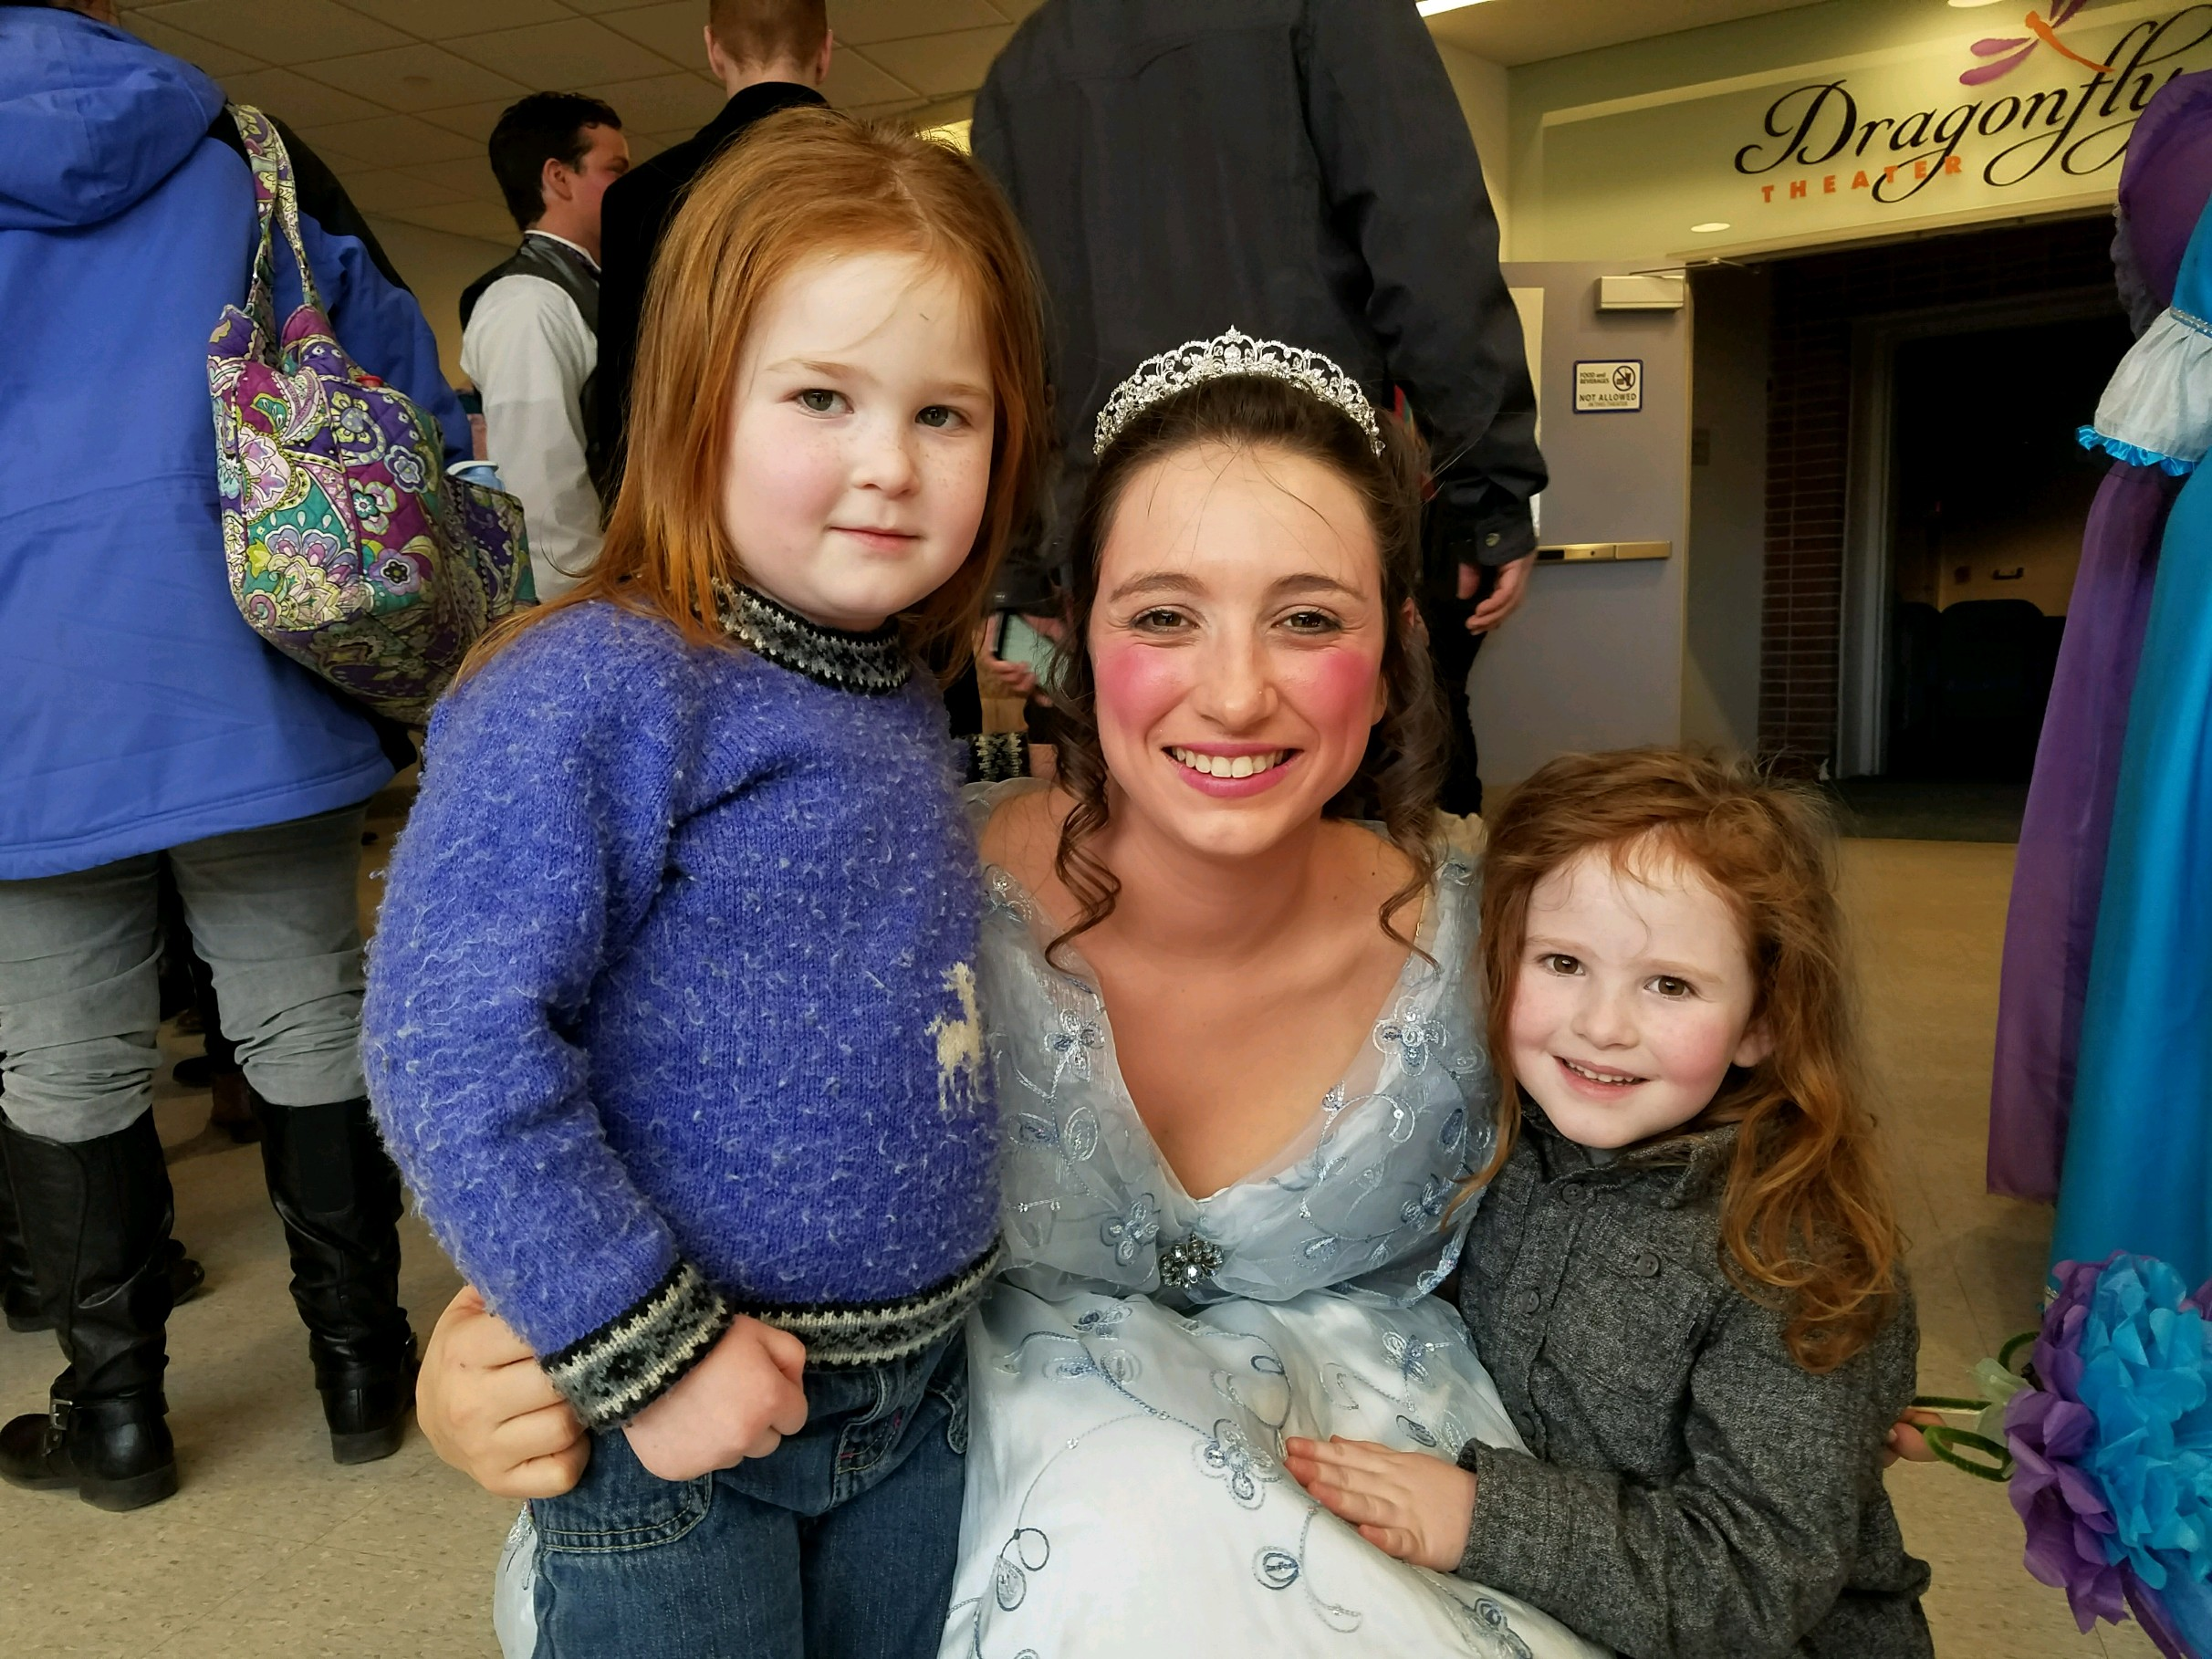 Cinderella greets tiny fans in lobby